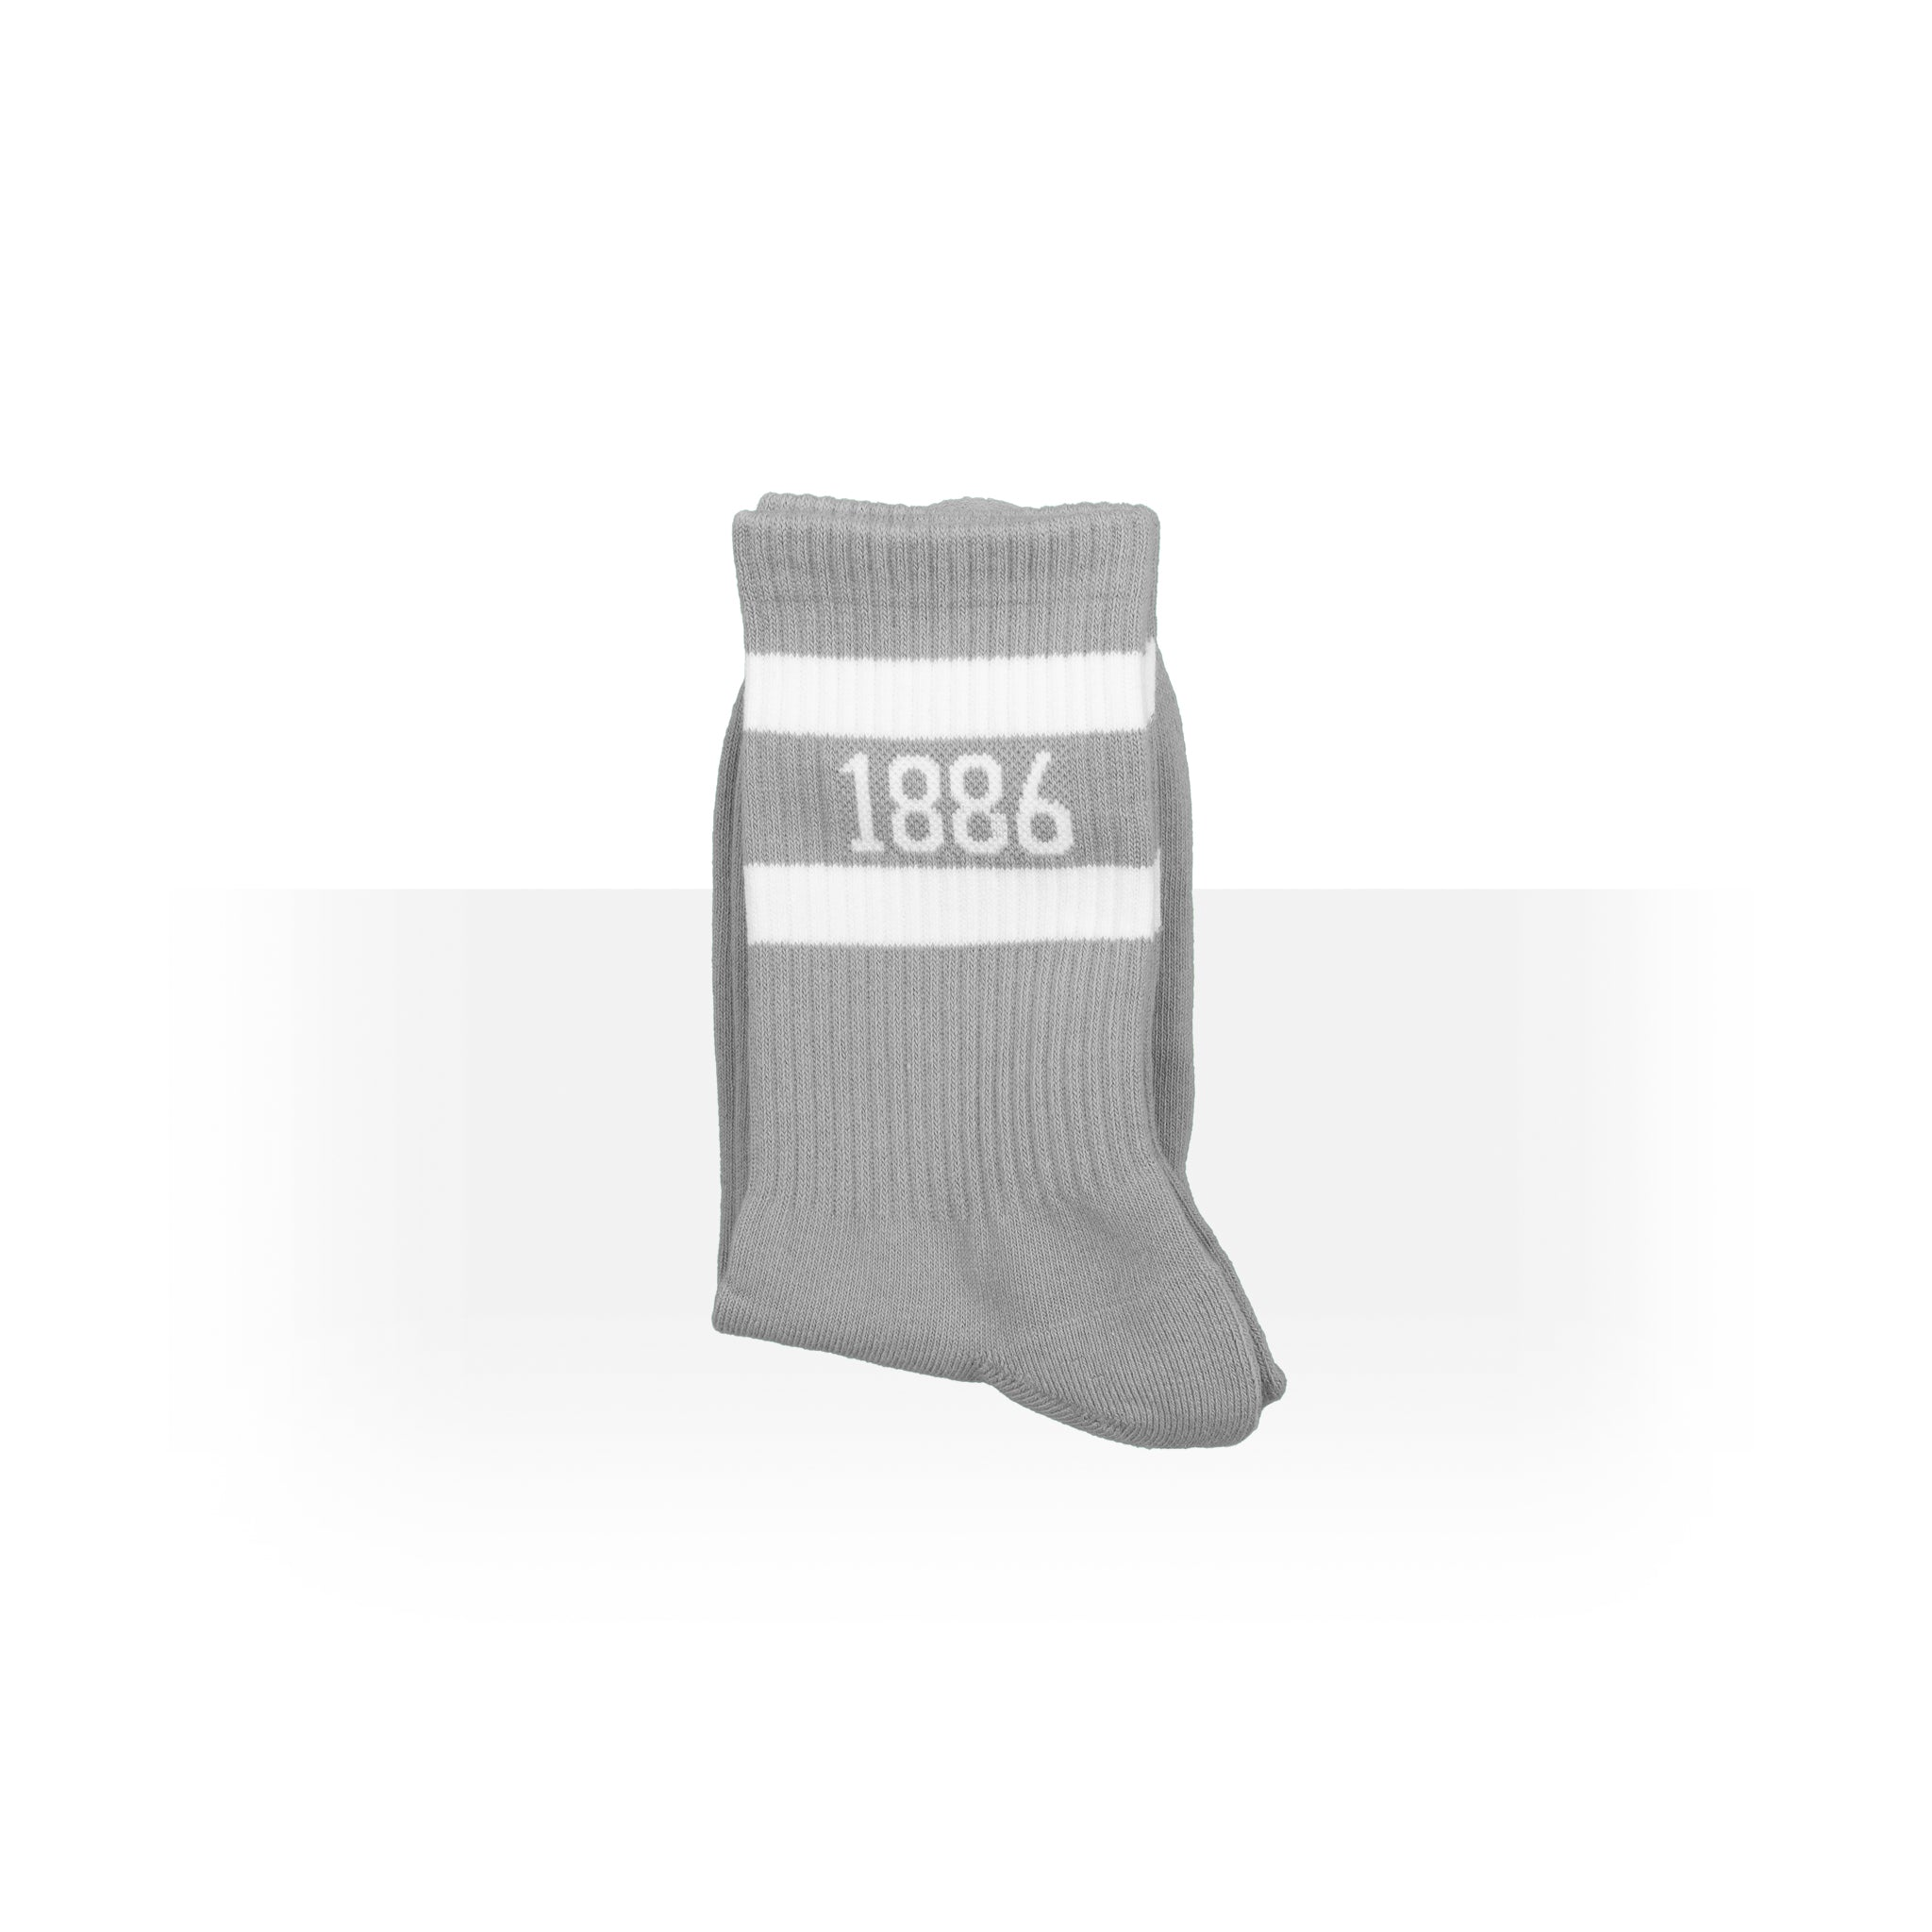 """1886"" Grey And White Anklet Socks"